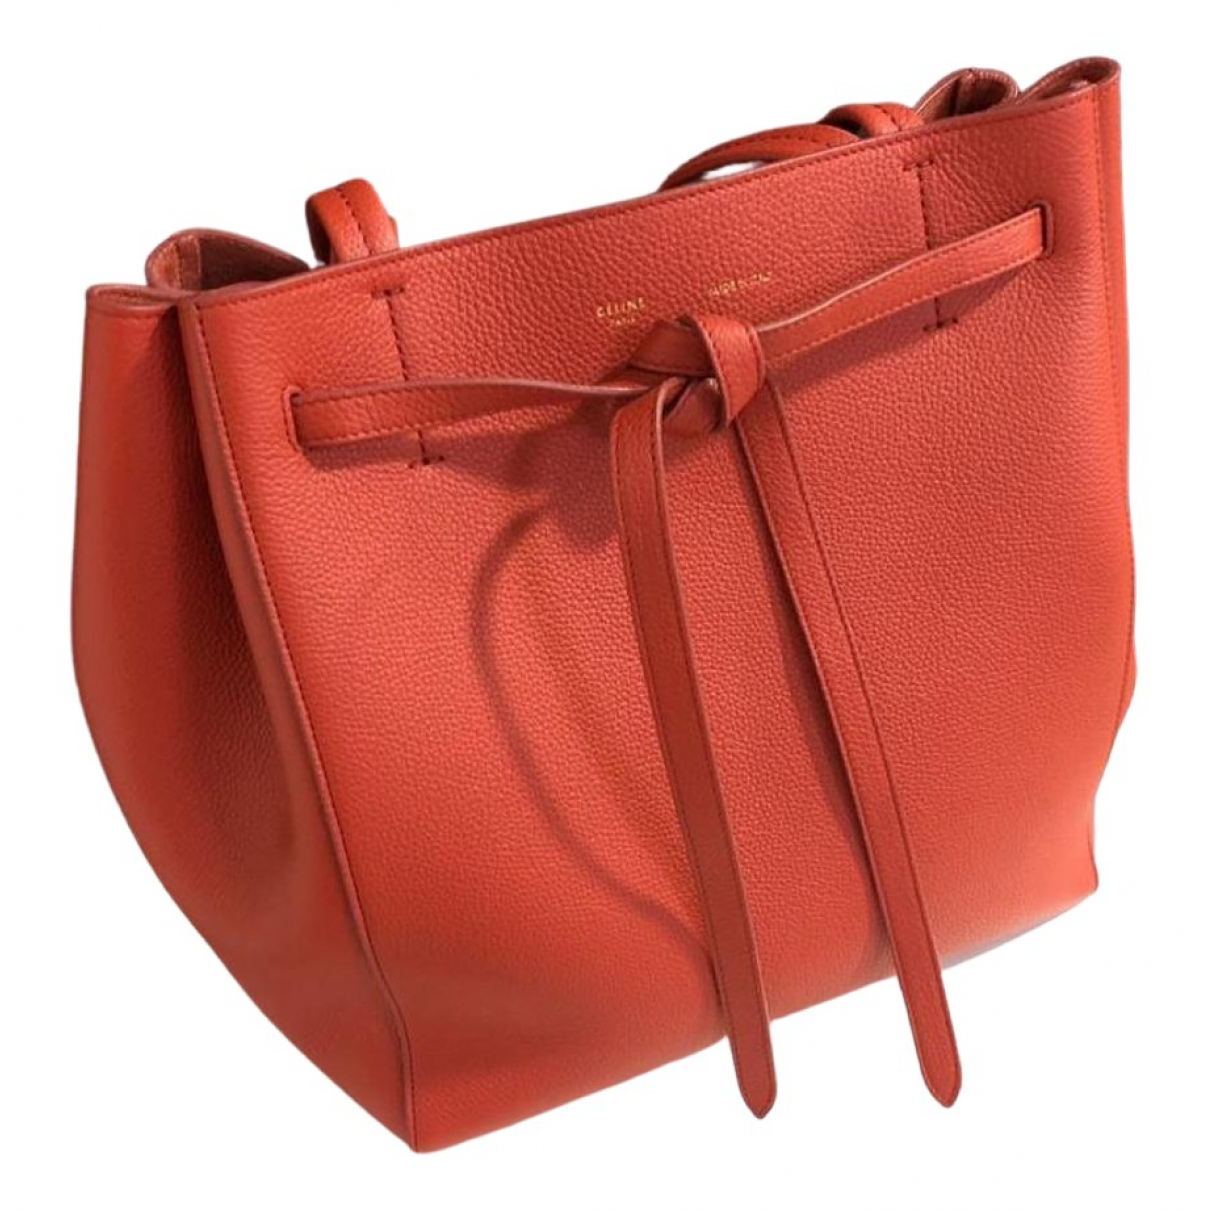 Celine Cabas Phantom Red Leather handbag for Women \N